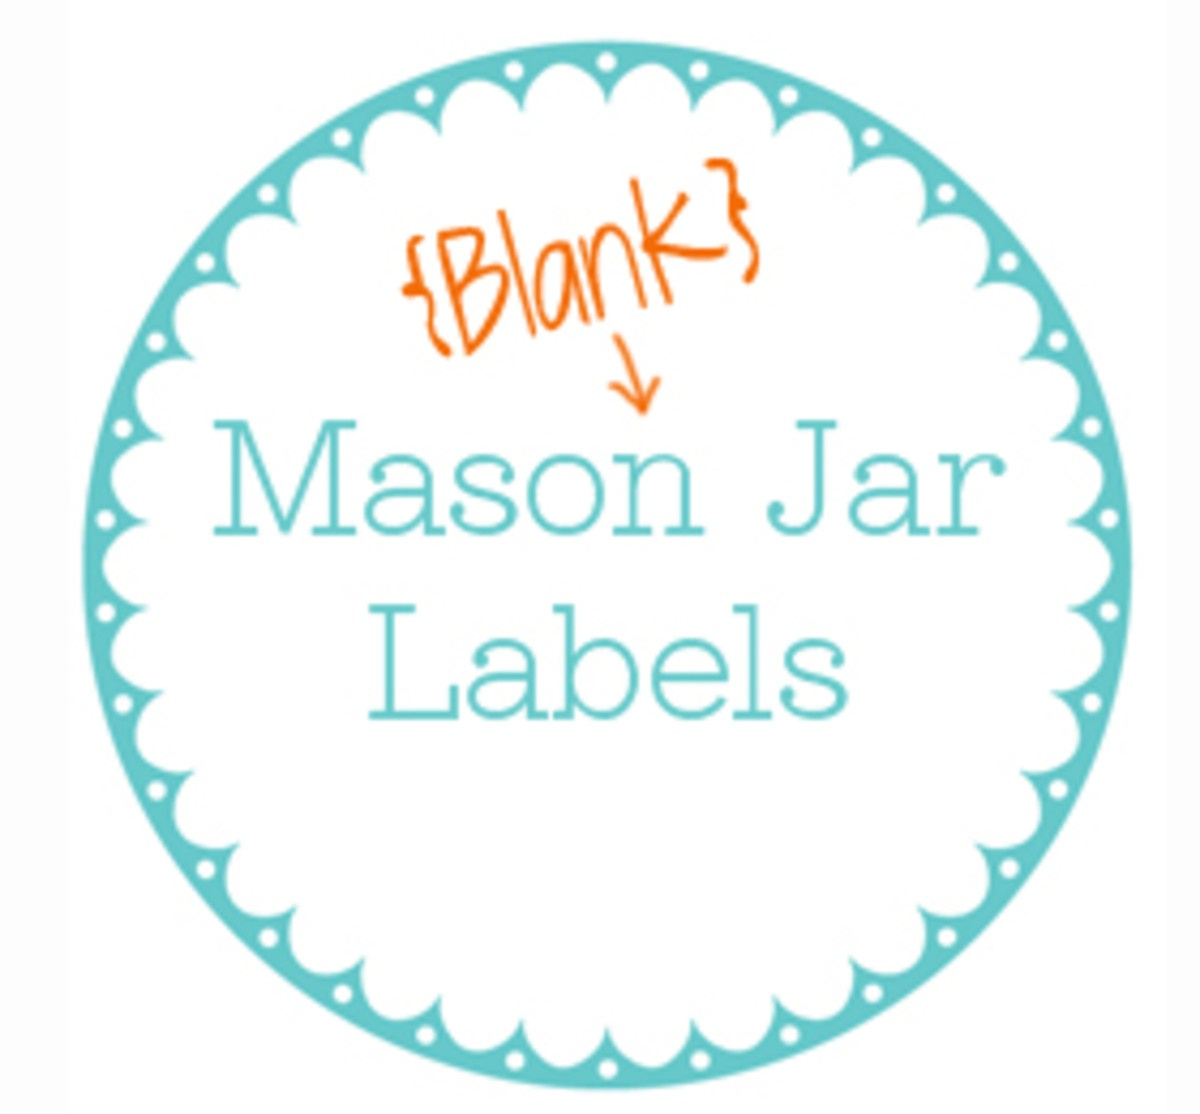 Printable Jar Label Template - Today's Mama - Free Printable Jar Label Templates